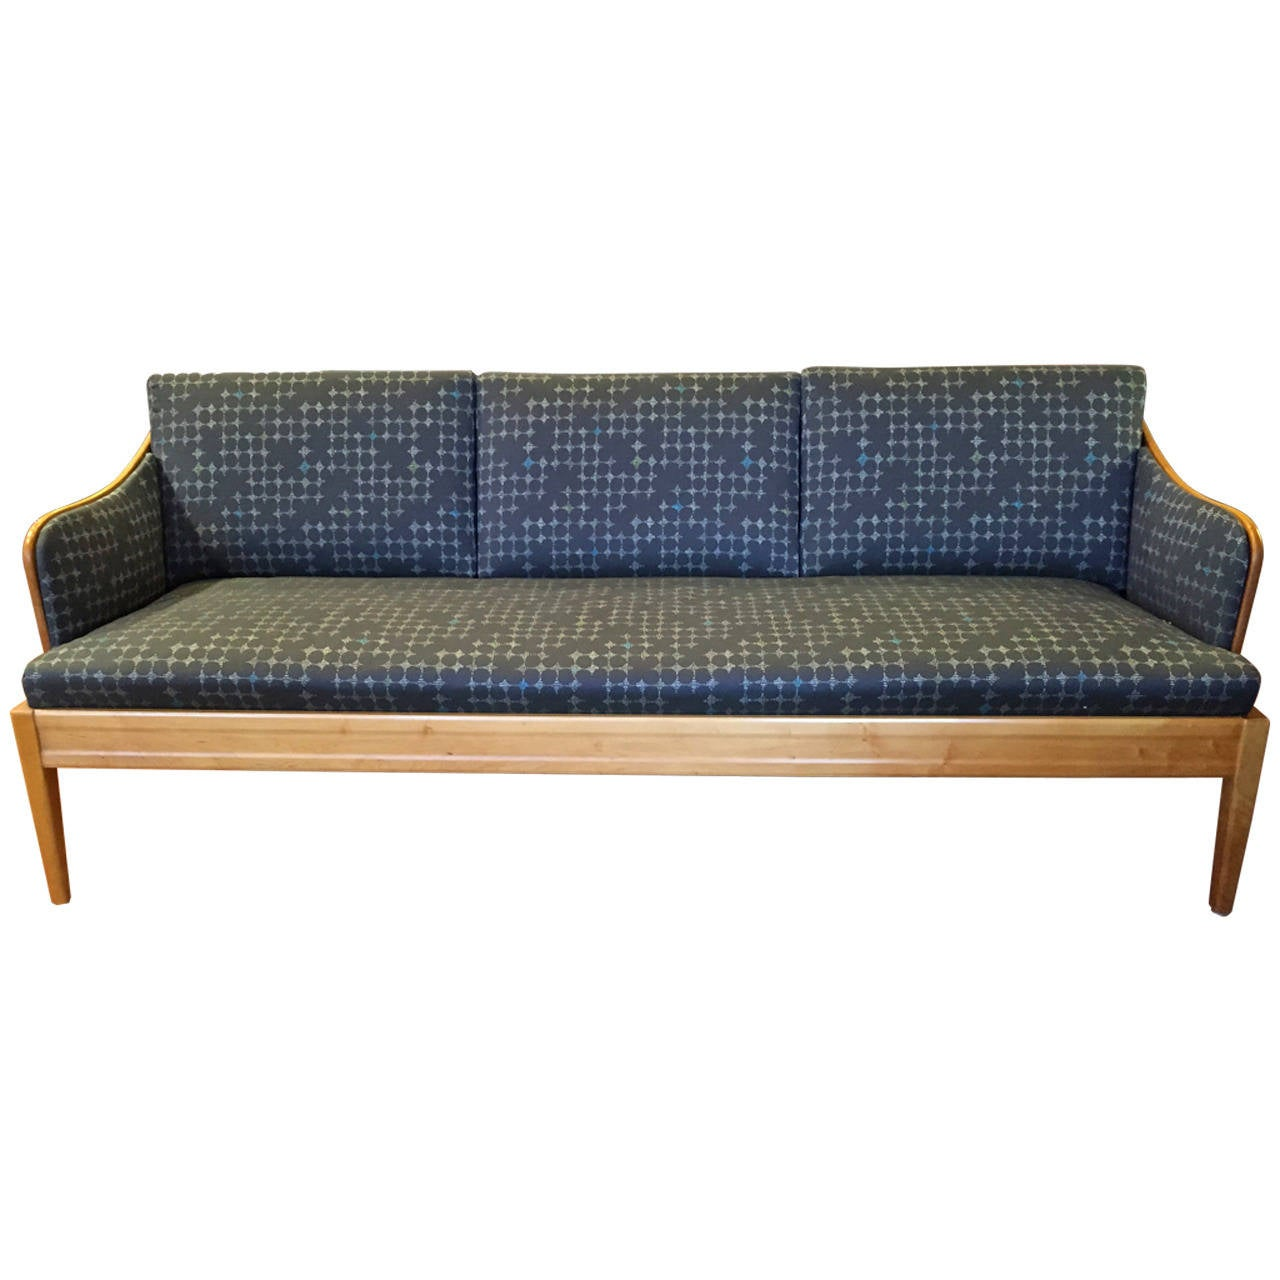 Carl malmsten sofa bench at 1stdibs Carl malmsten sofa